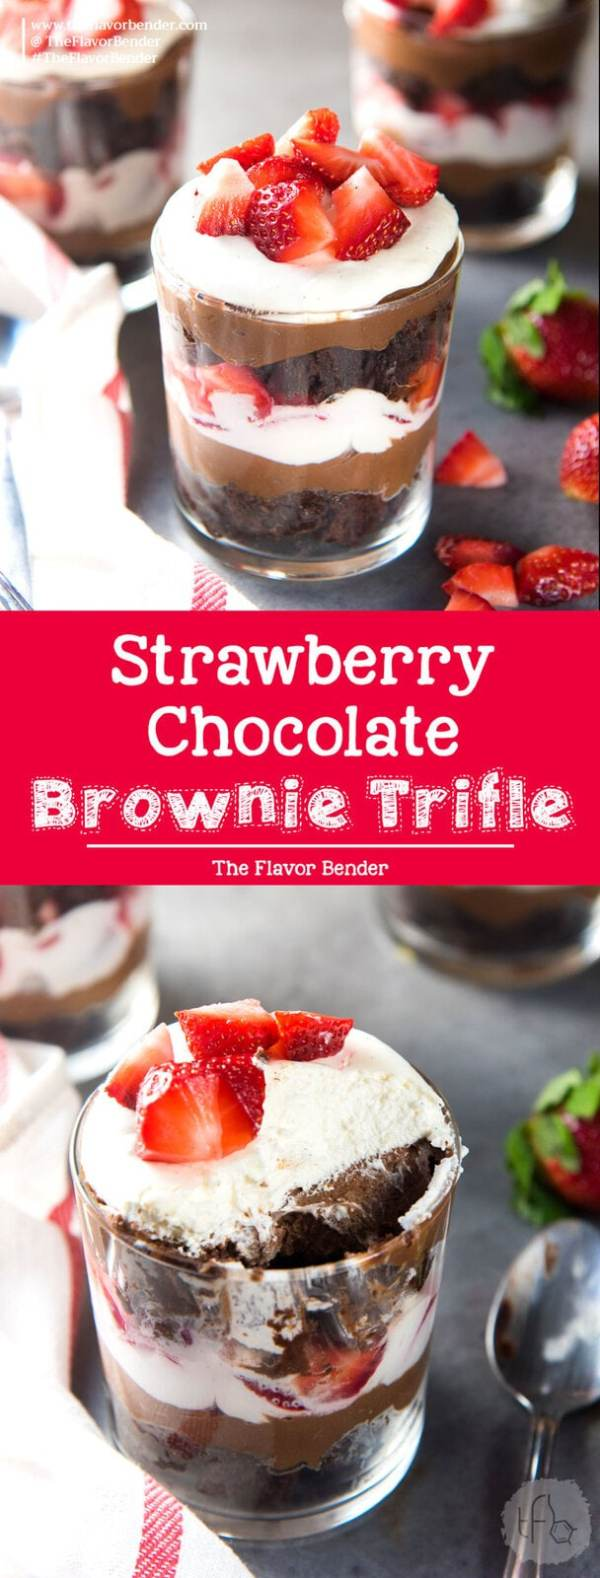 Strawberry Chocolate Brownie Trifle The Flavor Bender